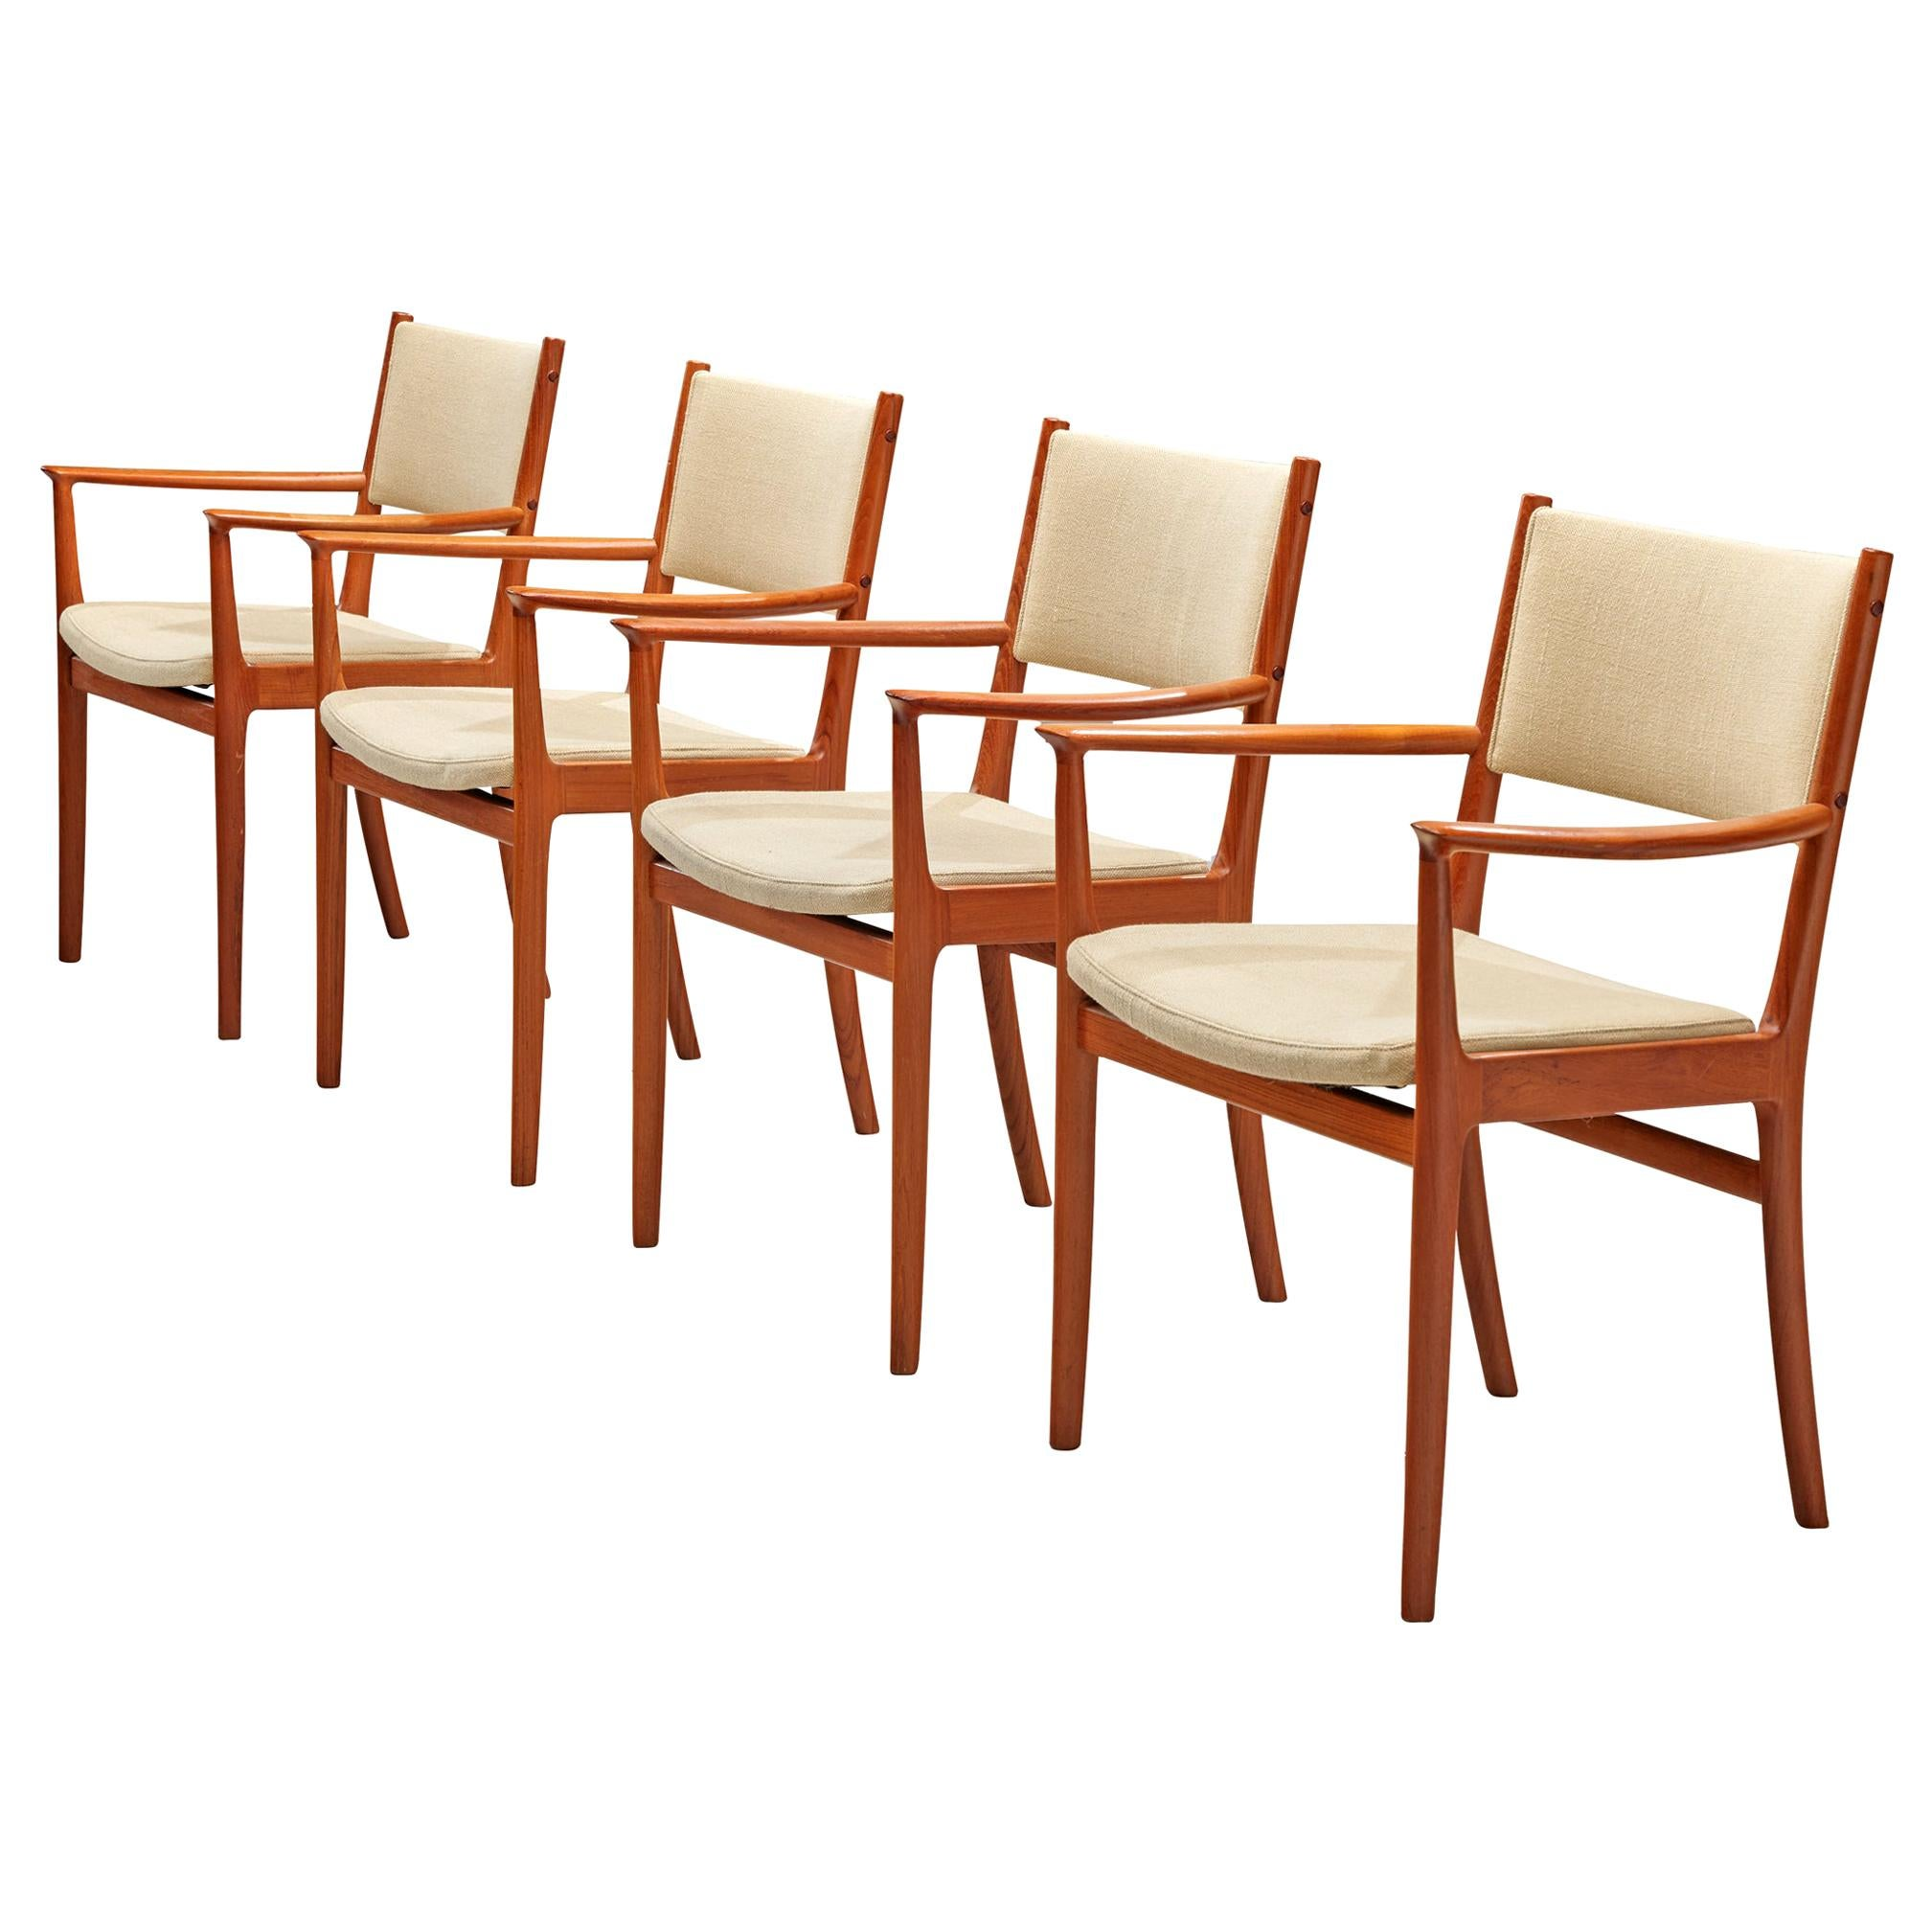 Scandinavian Teak Dining Chairs by Kai Lyngfeldt Larsen